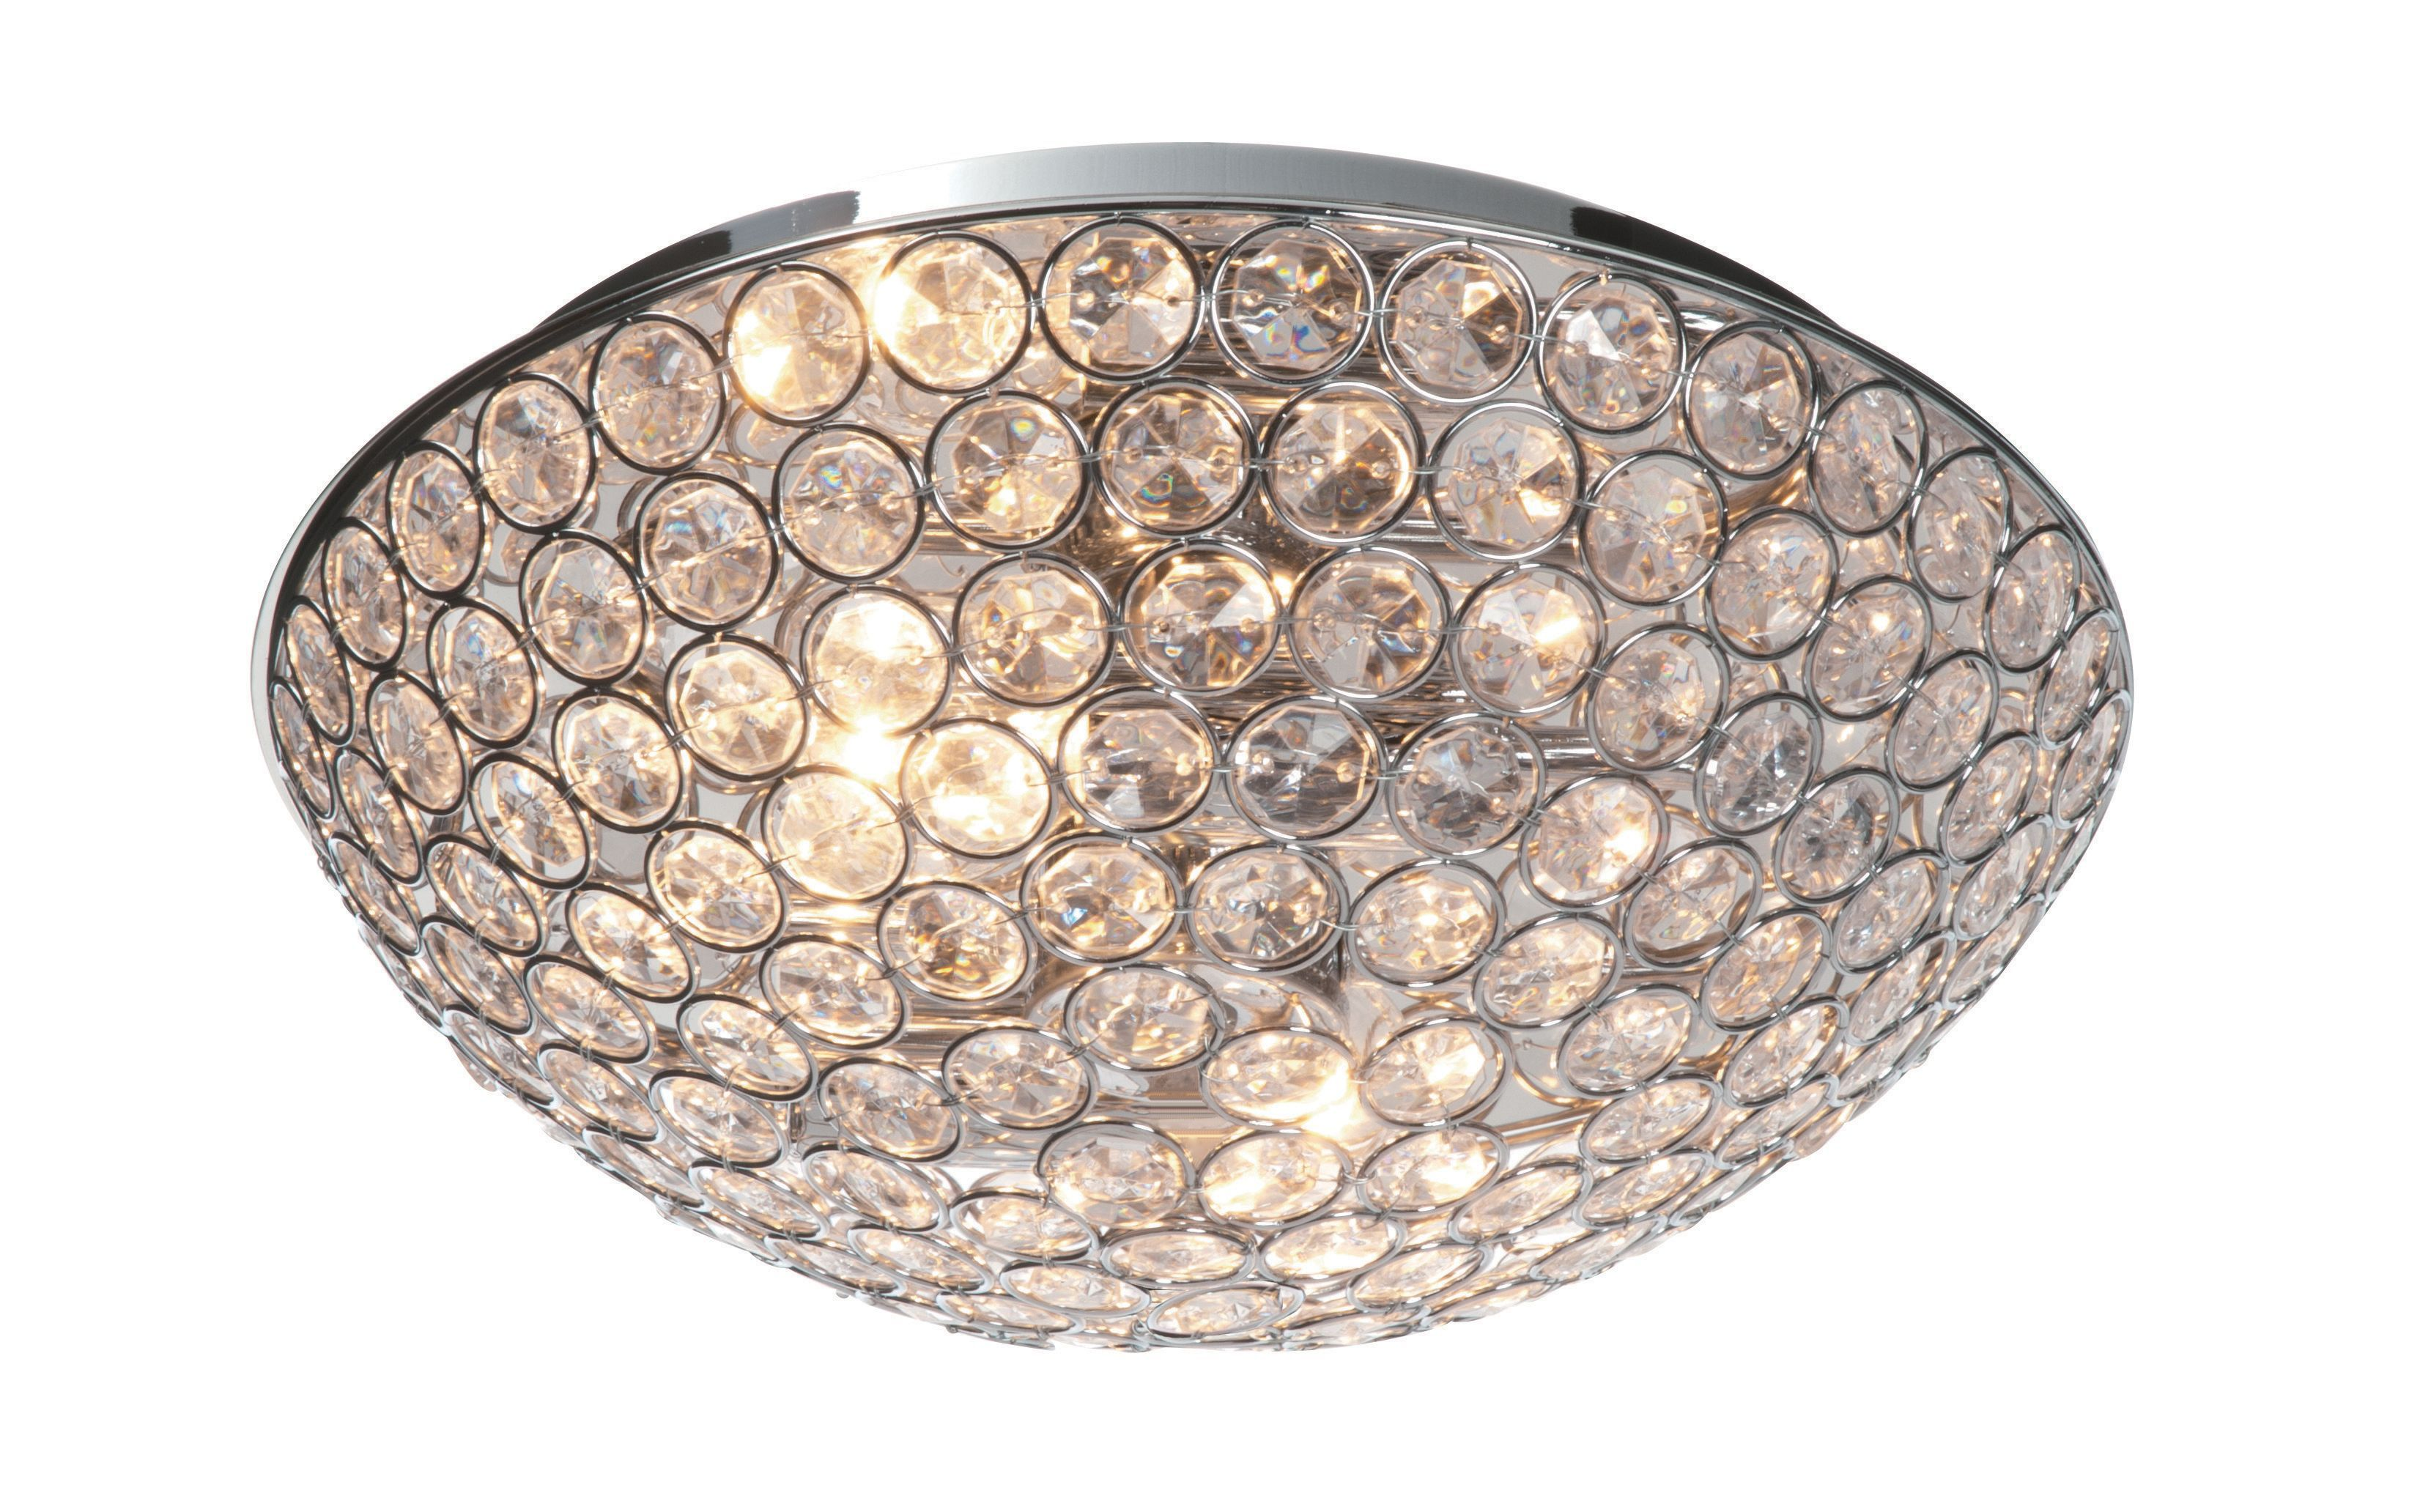 B And Q Lighting Ceiling: Lopez Crystal Circle Chrome Effect 2 Lamp Ceiling Light | Departments | DIY  at B&Q,Lighting